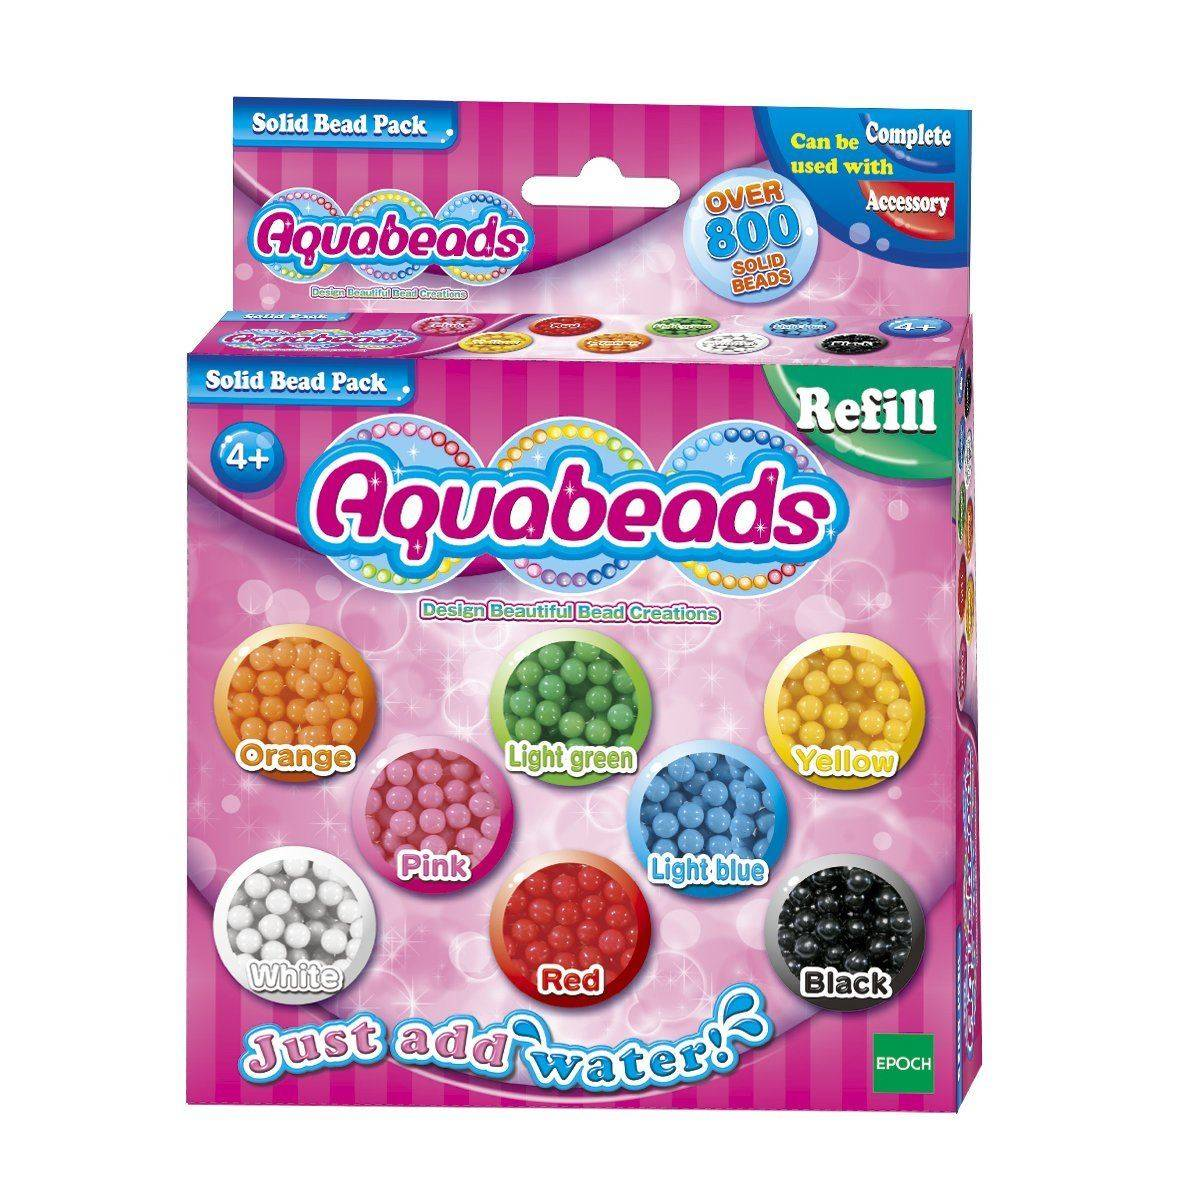 Aquabeads Solid Bead Pack Refill (79168)